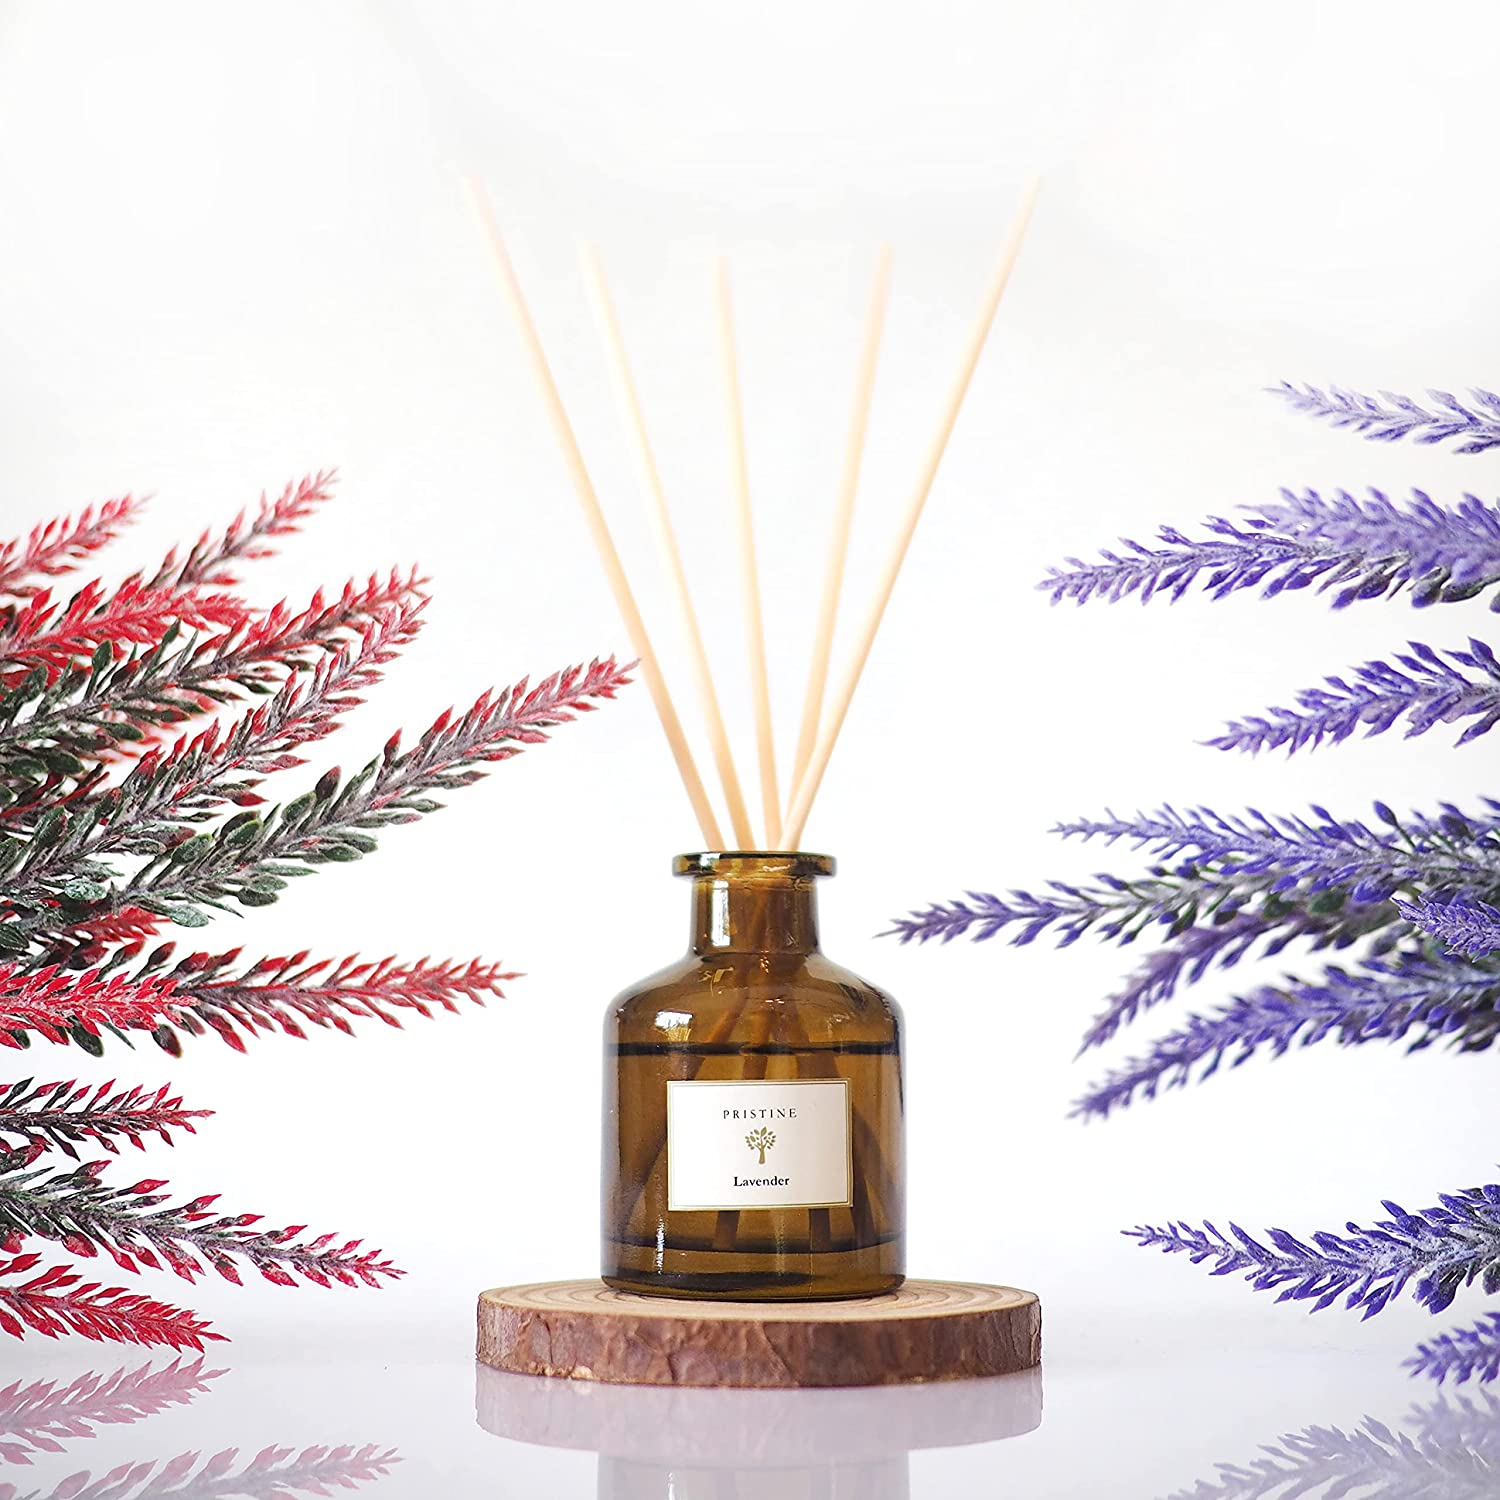 PRISTINE Lavender Reed Diffuser Set | Reed Oil Diffuser Sticks, 1.6oz | Aromatherapy as a Means for Insomnia & Relaxation| Aromatic Oil Sticks as Best Home Fragrance Product | Provide Enduring Effect